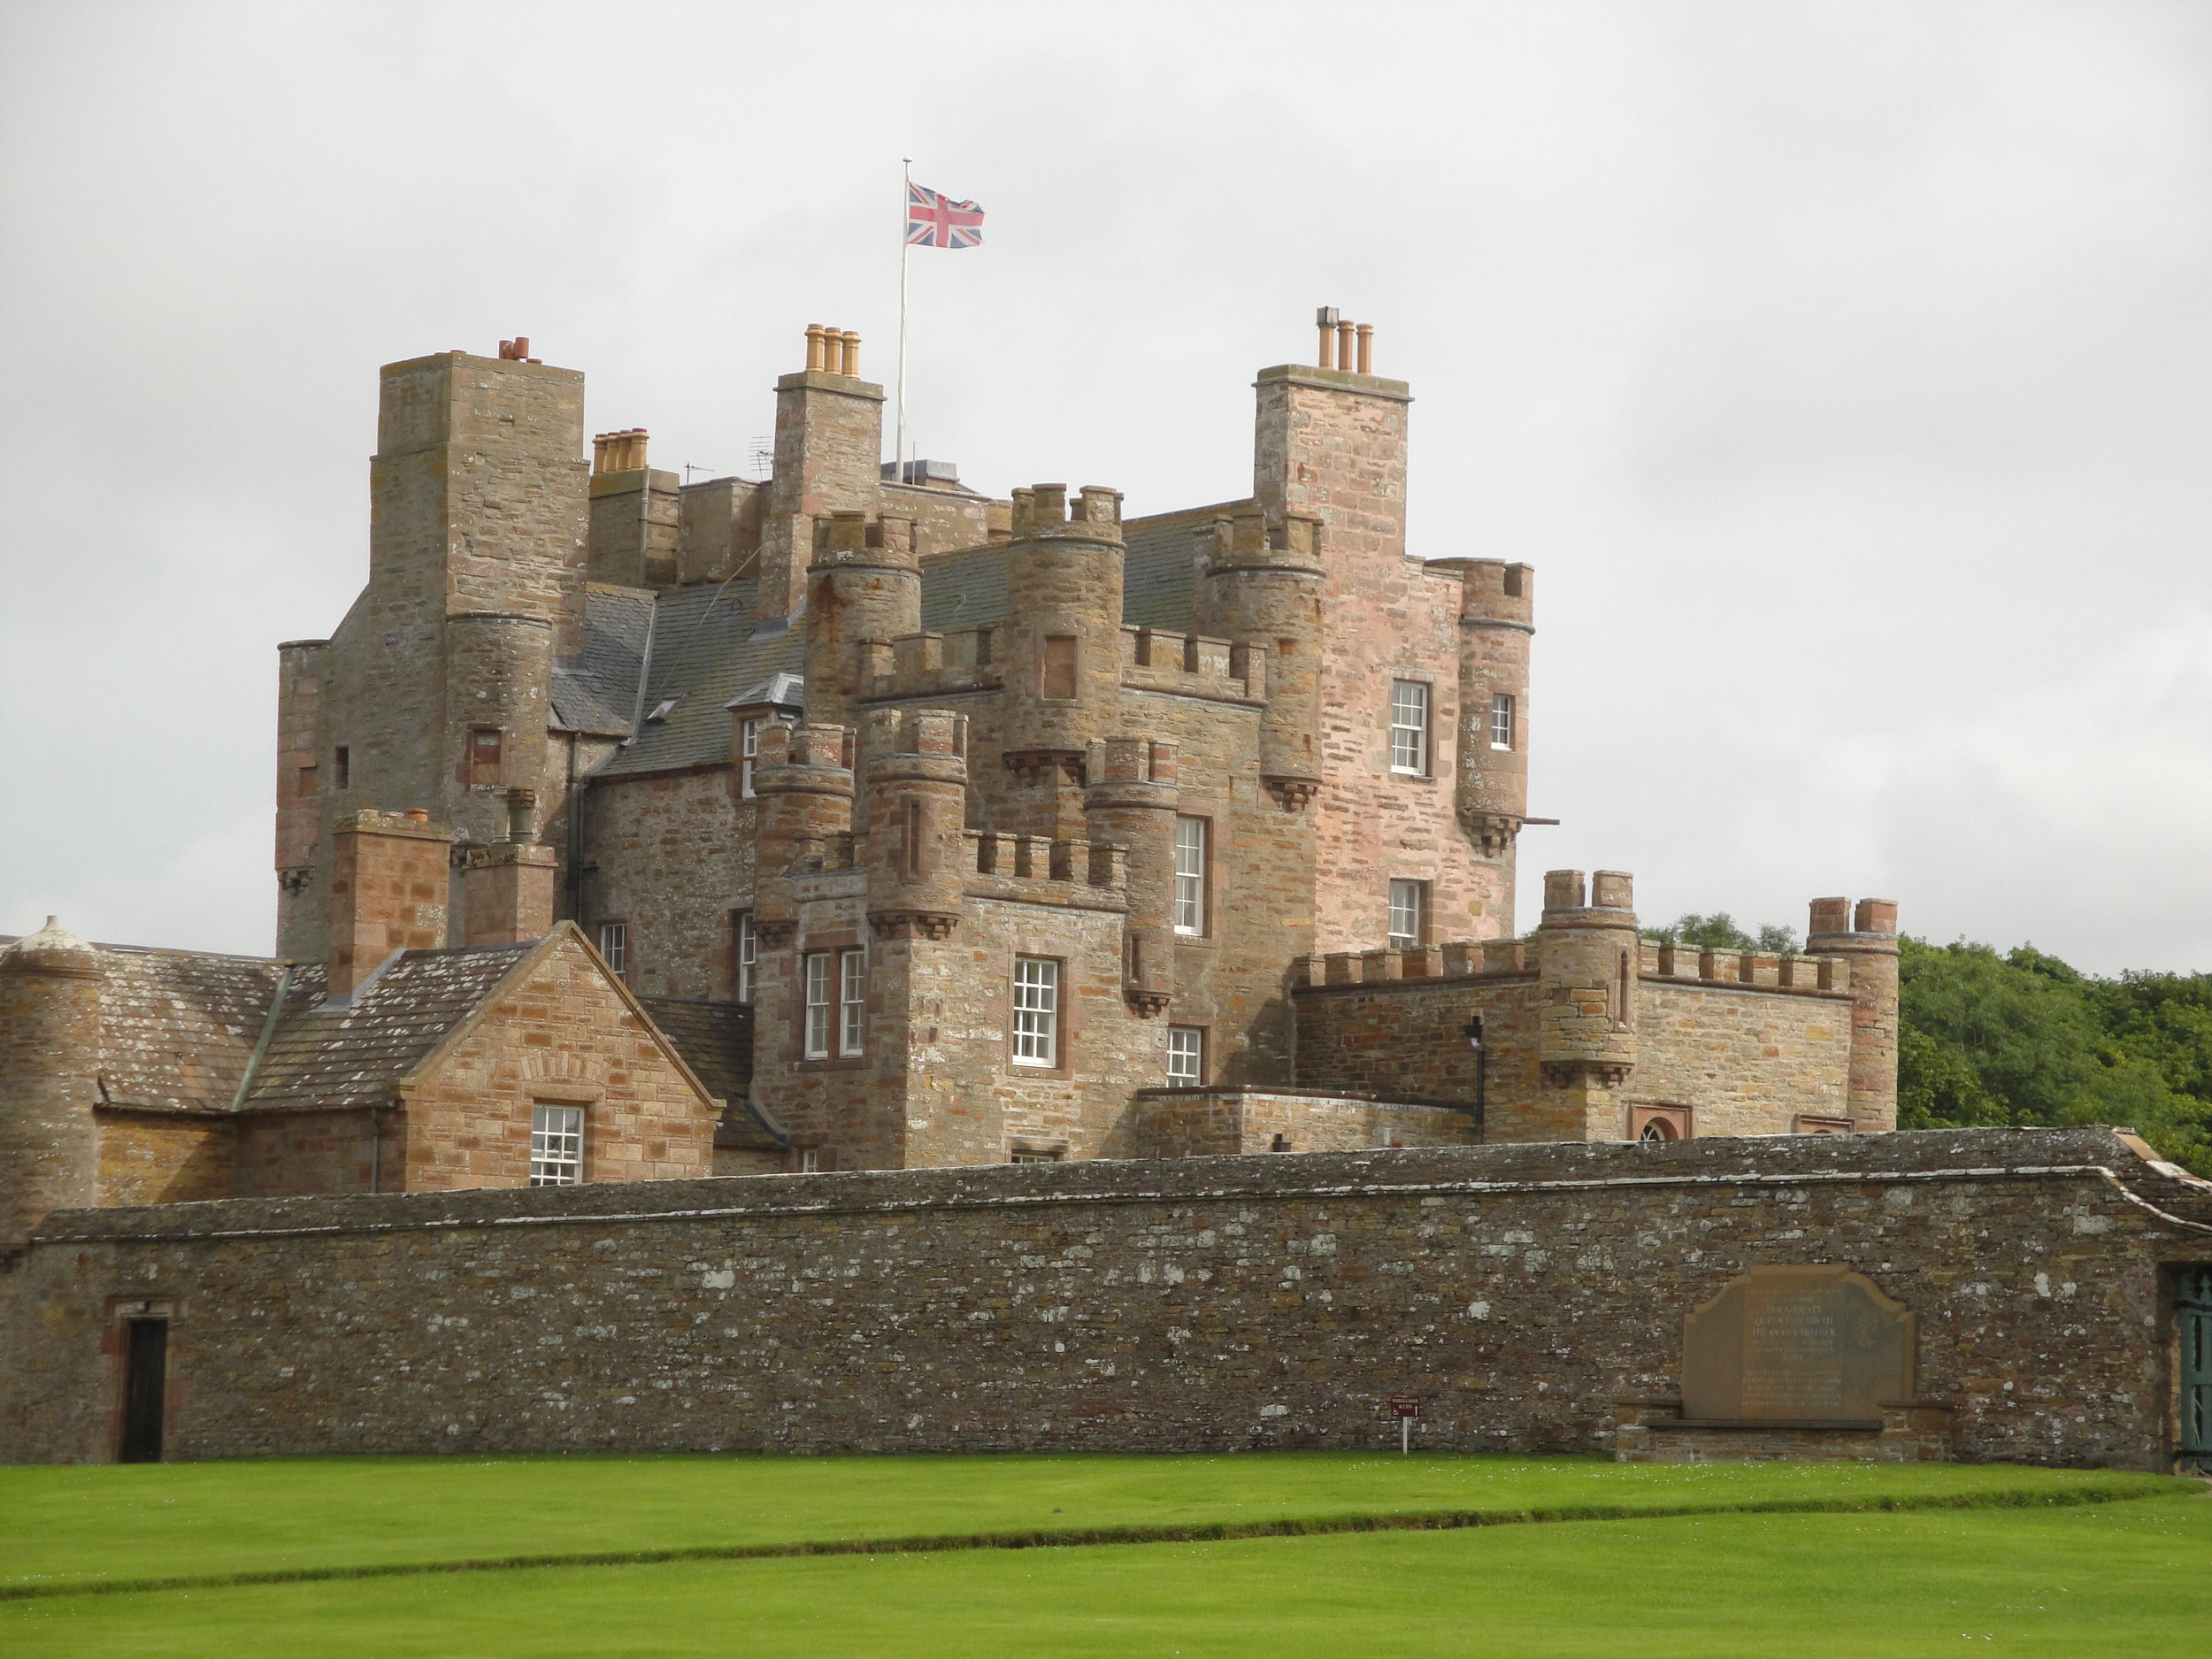 PICTURED:  The Castle of Mey's curtain wall and keep